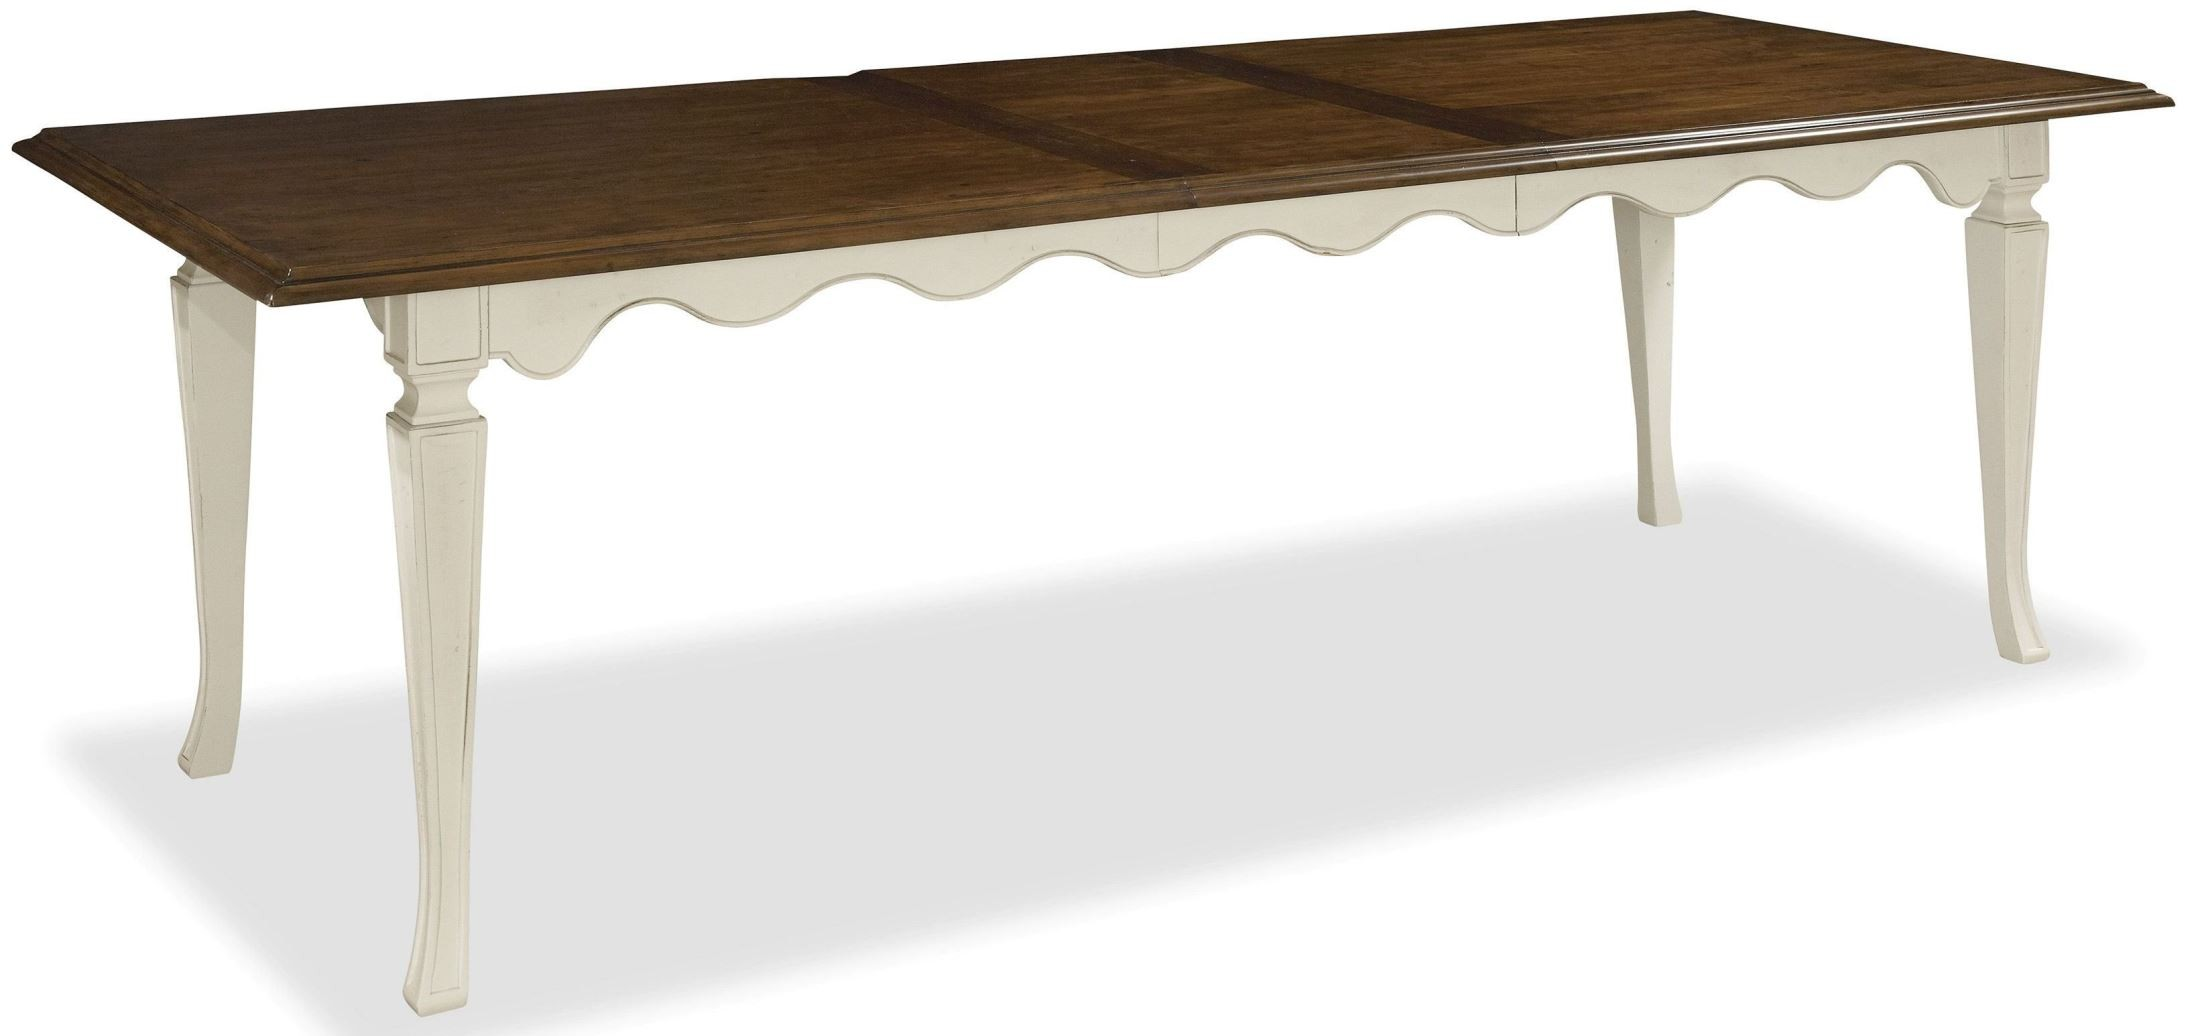 cordevalle rectangular extendable dining room table from universal